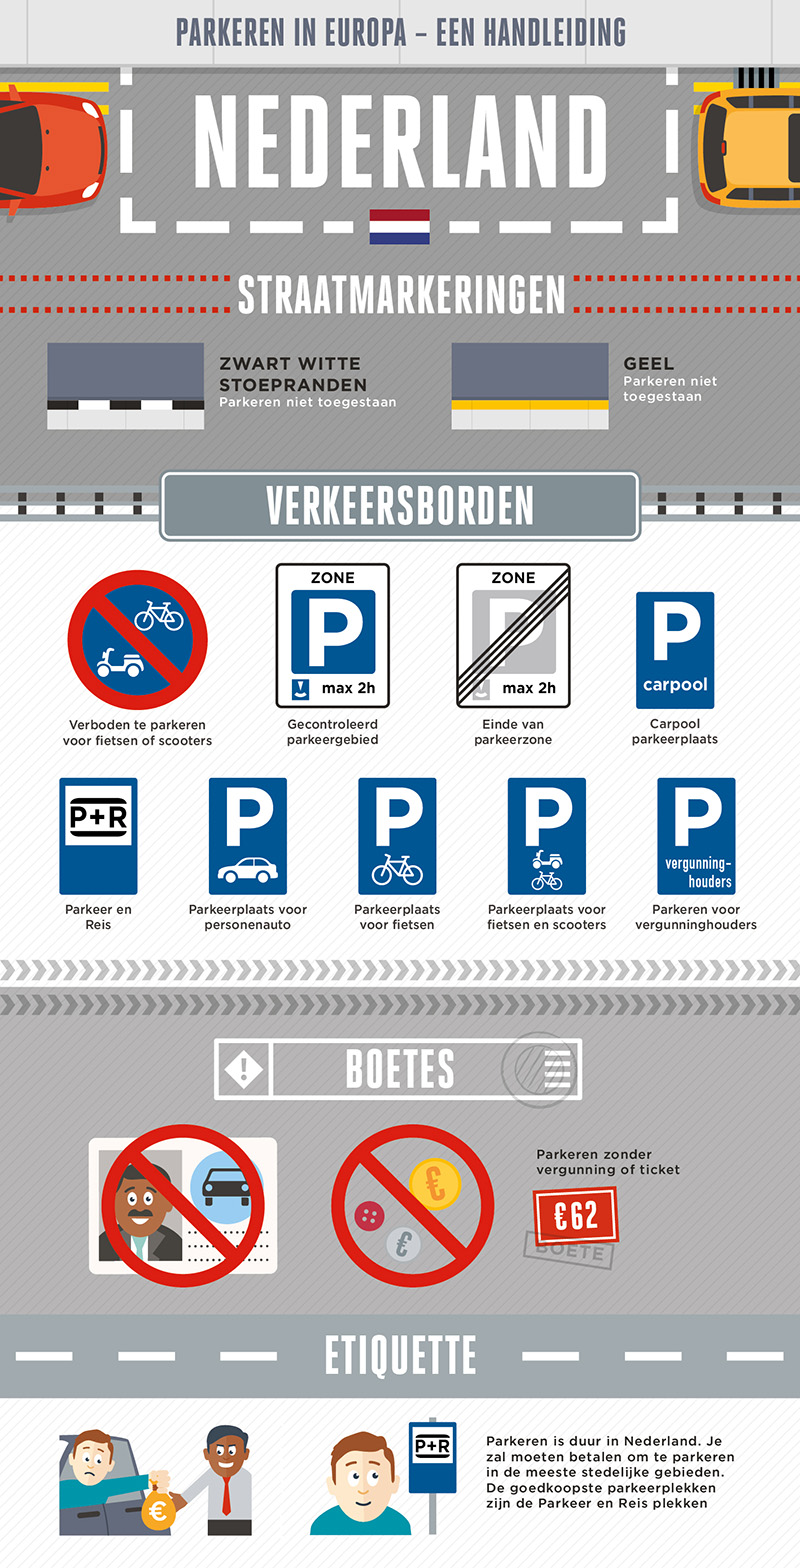 Parking rules